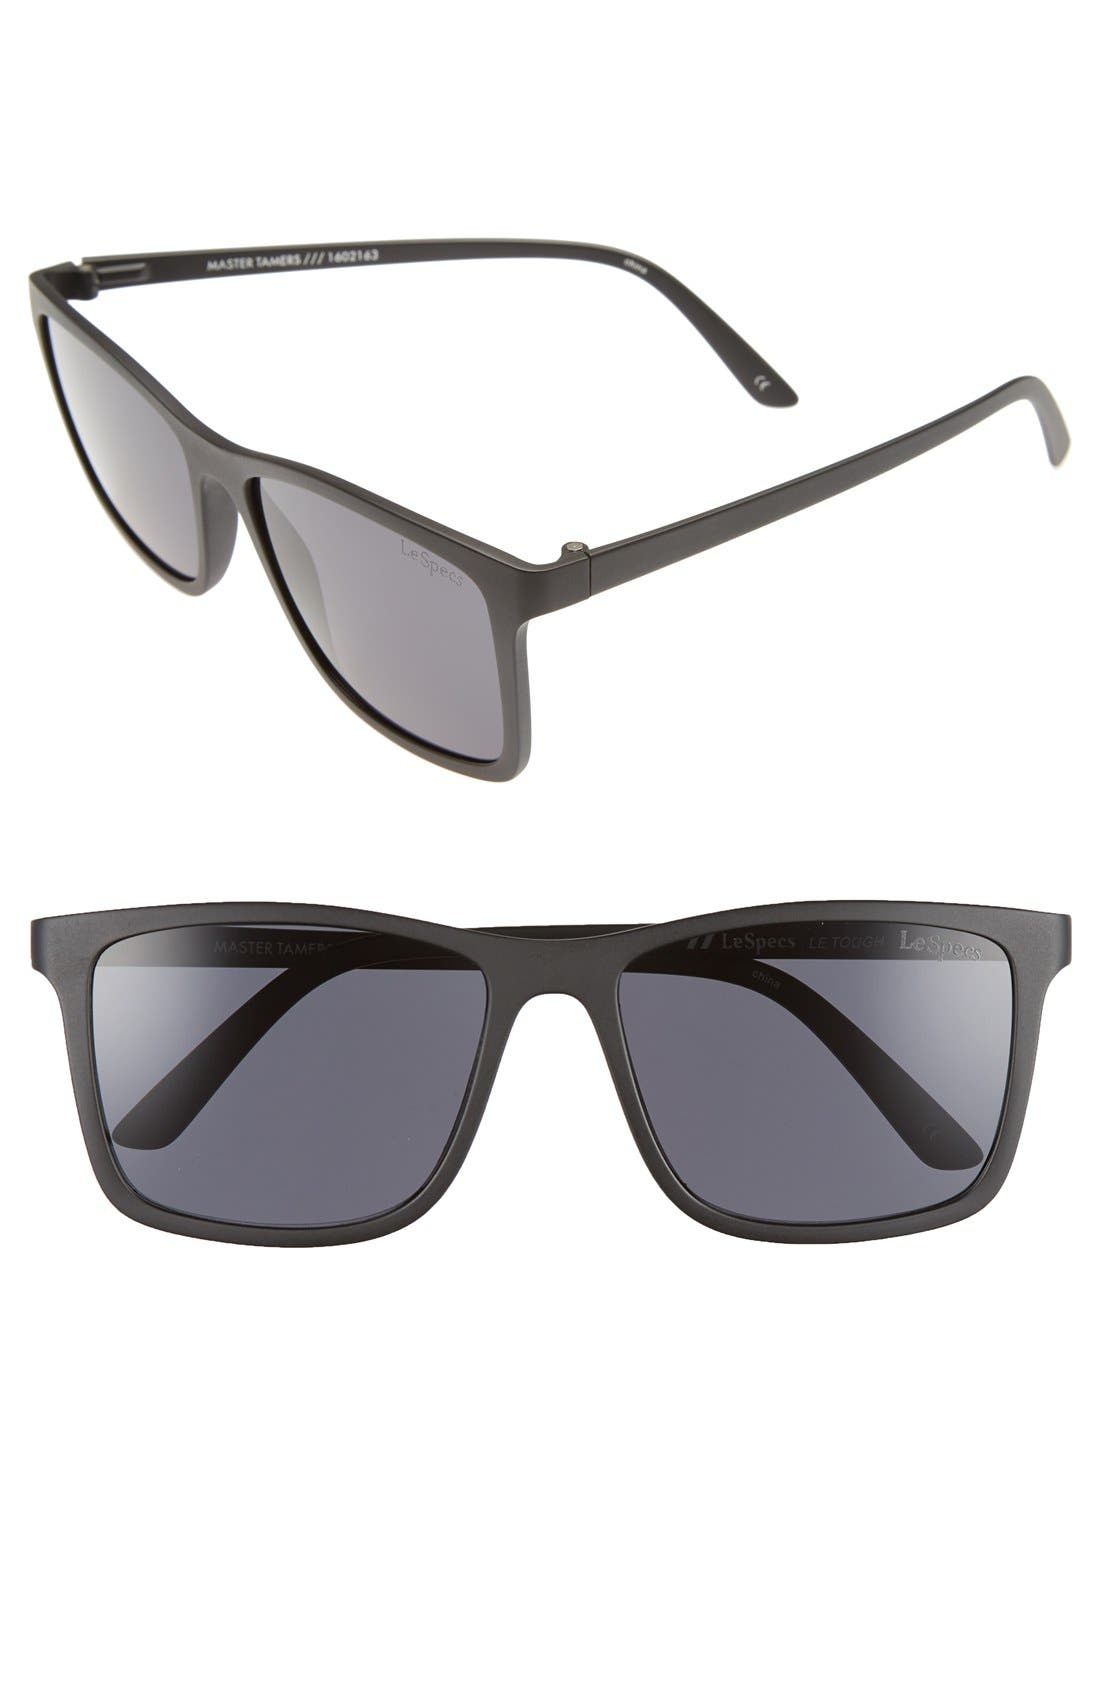 Main Image - Le Specs 'Master Tamers' 56mm Sunglasses